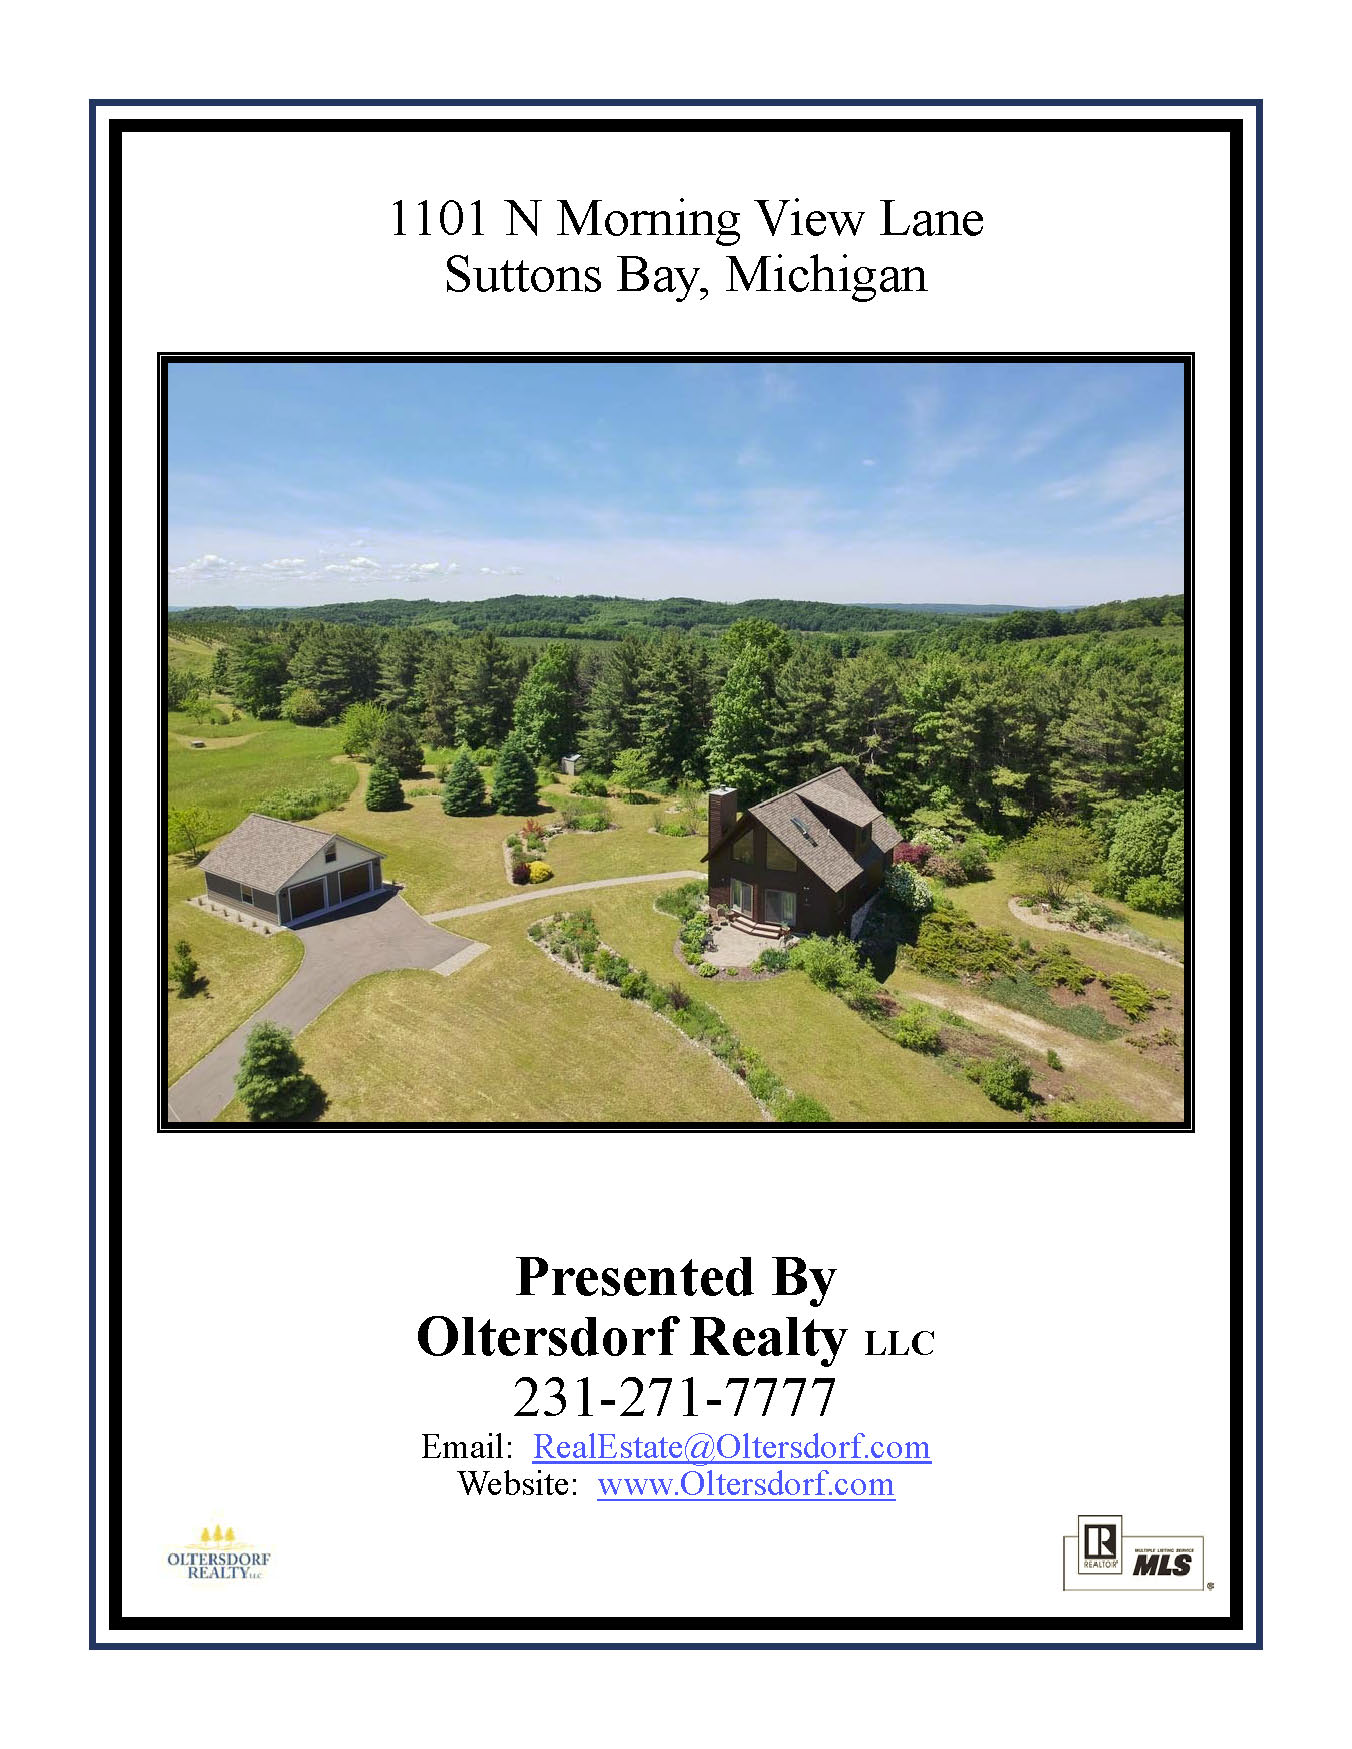 1101 N Morning View Lane, Suttons Bay – Marketing Packet For Sale by Oltersdorf Realty LLC (1).jpg